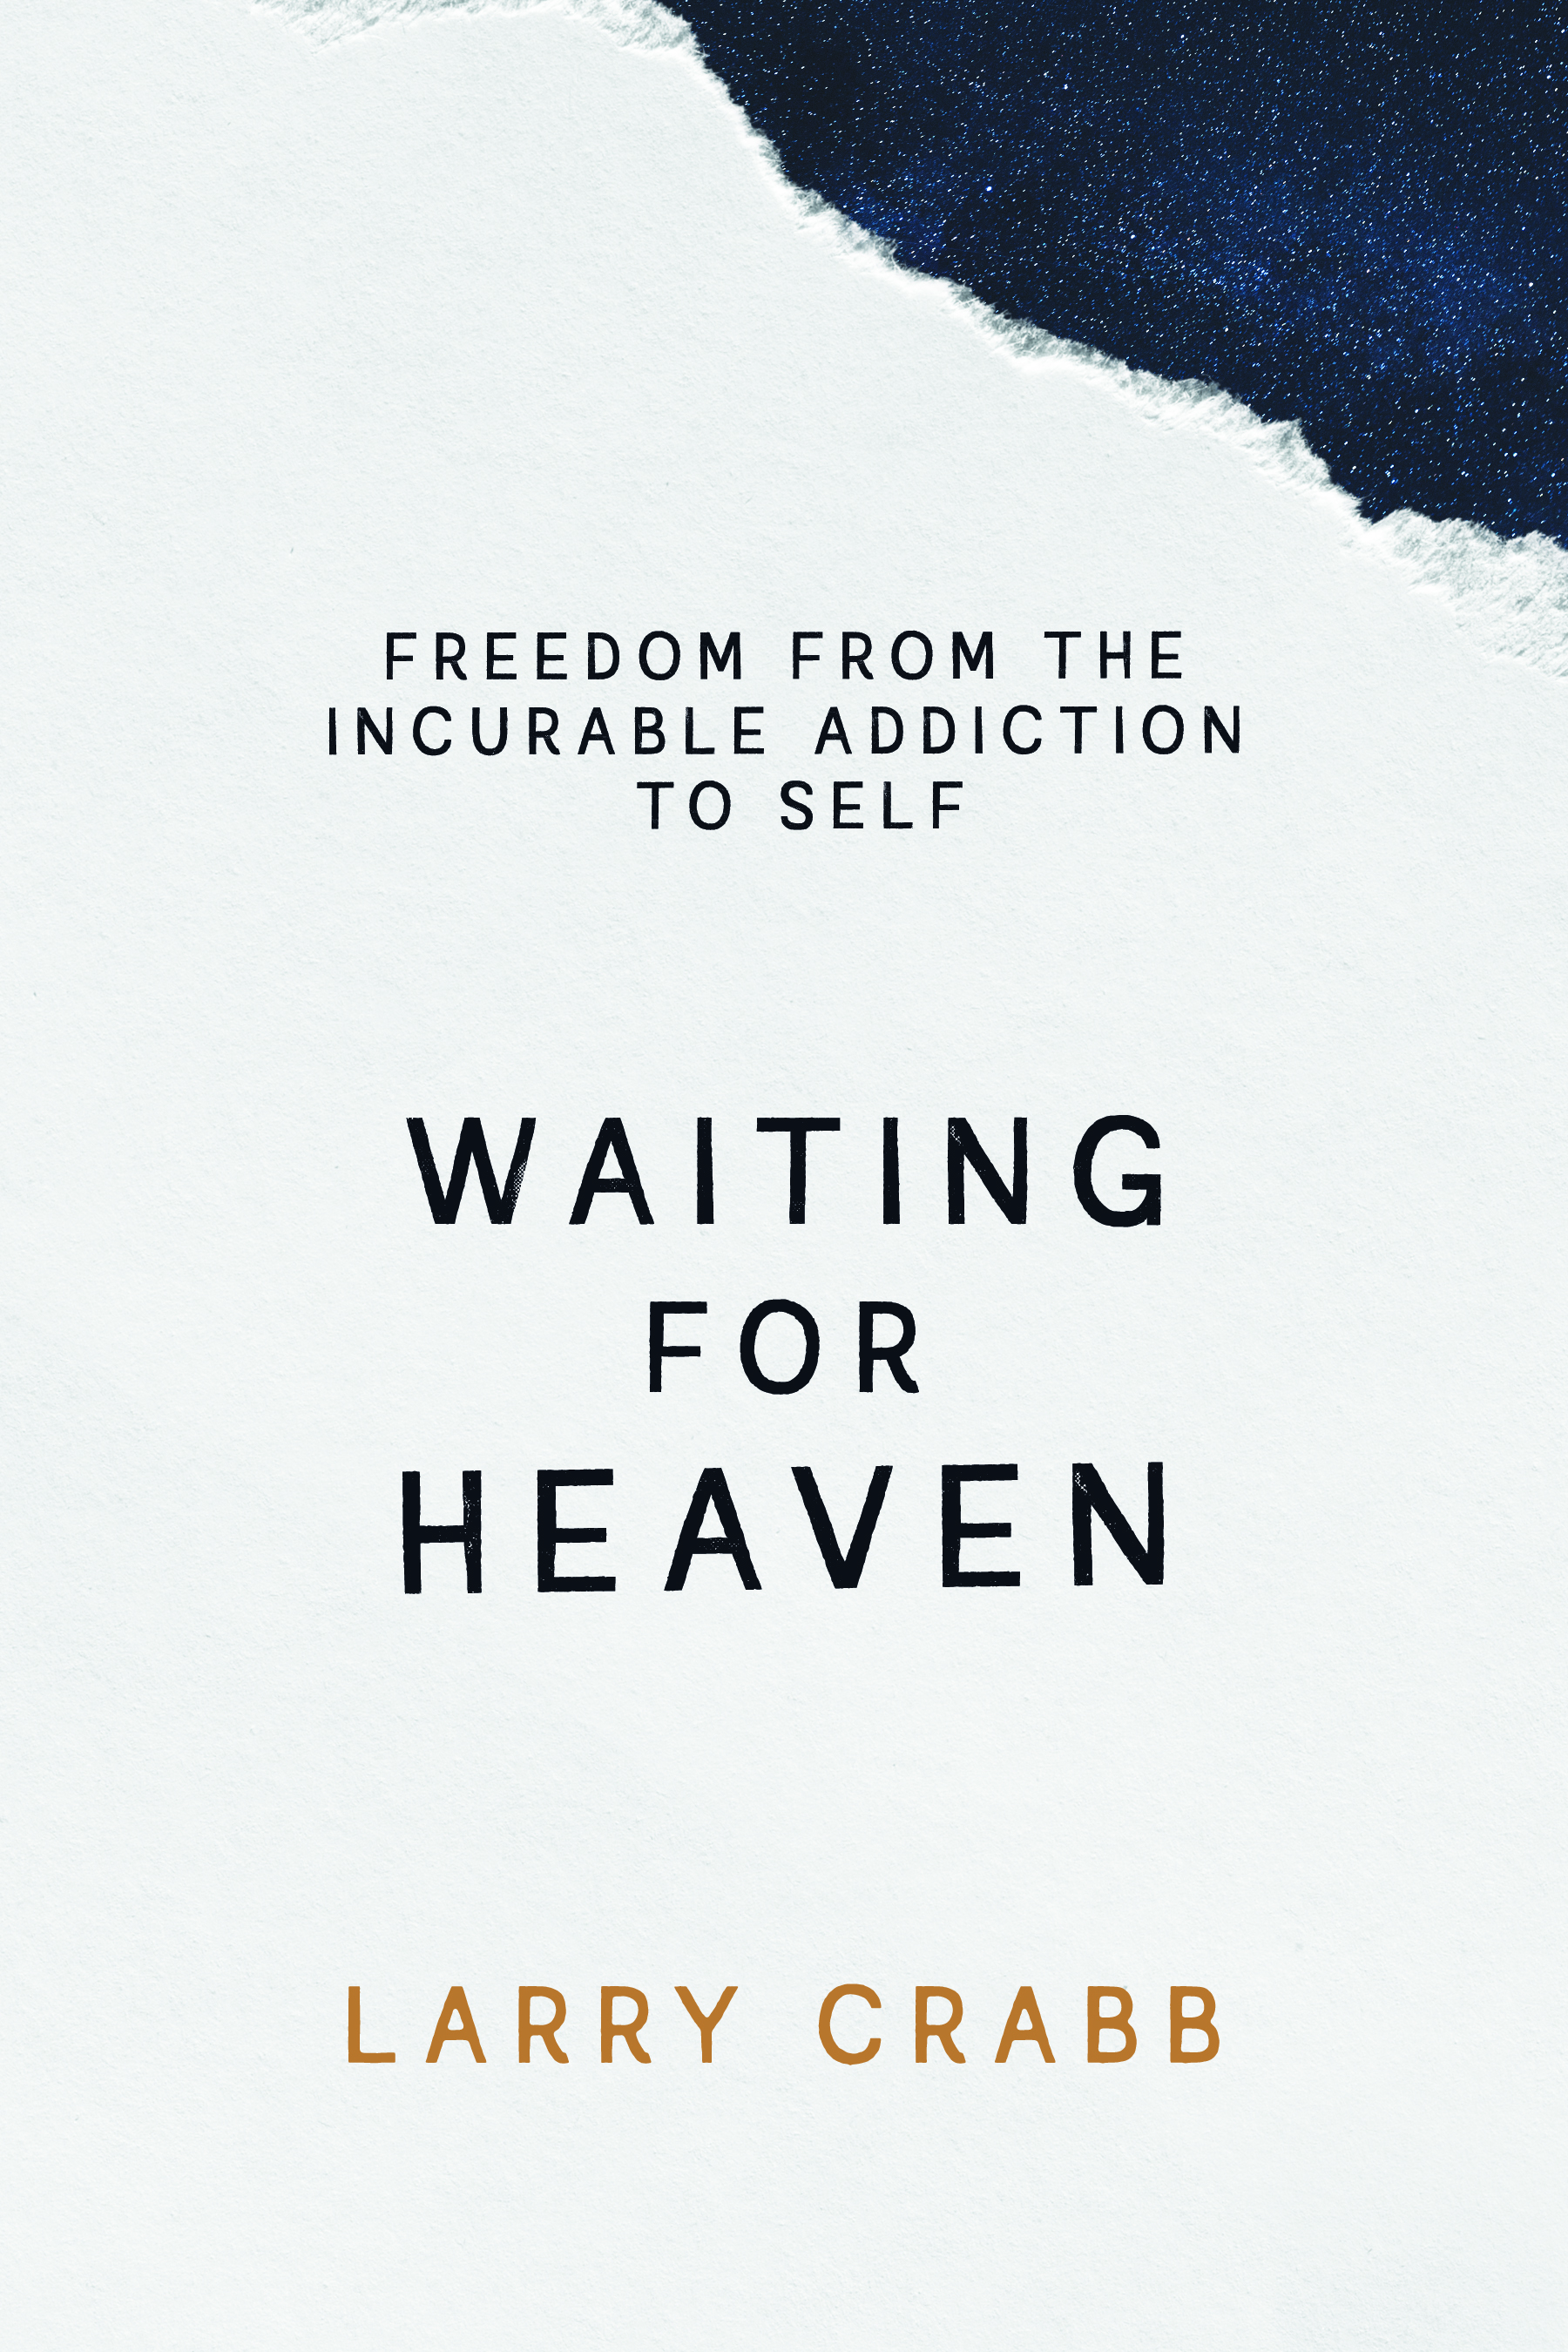 Waiting for Heaven: Freedom from the Incurable Addiction to Self